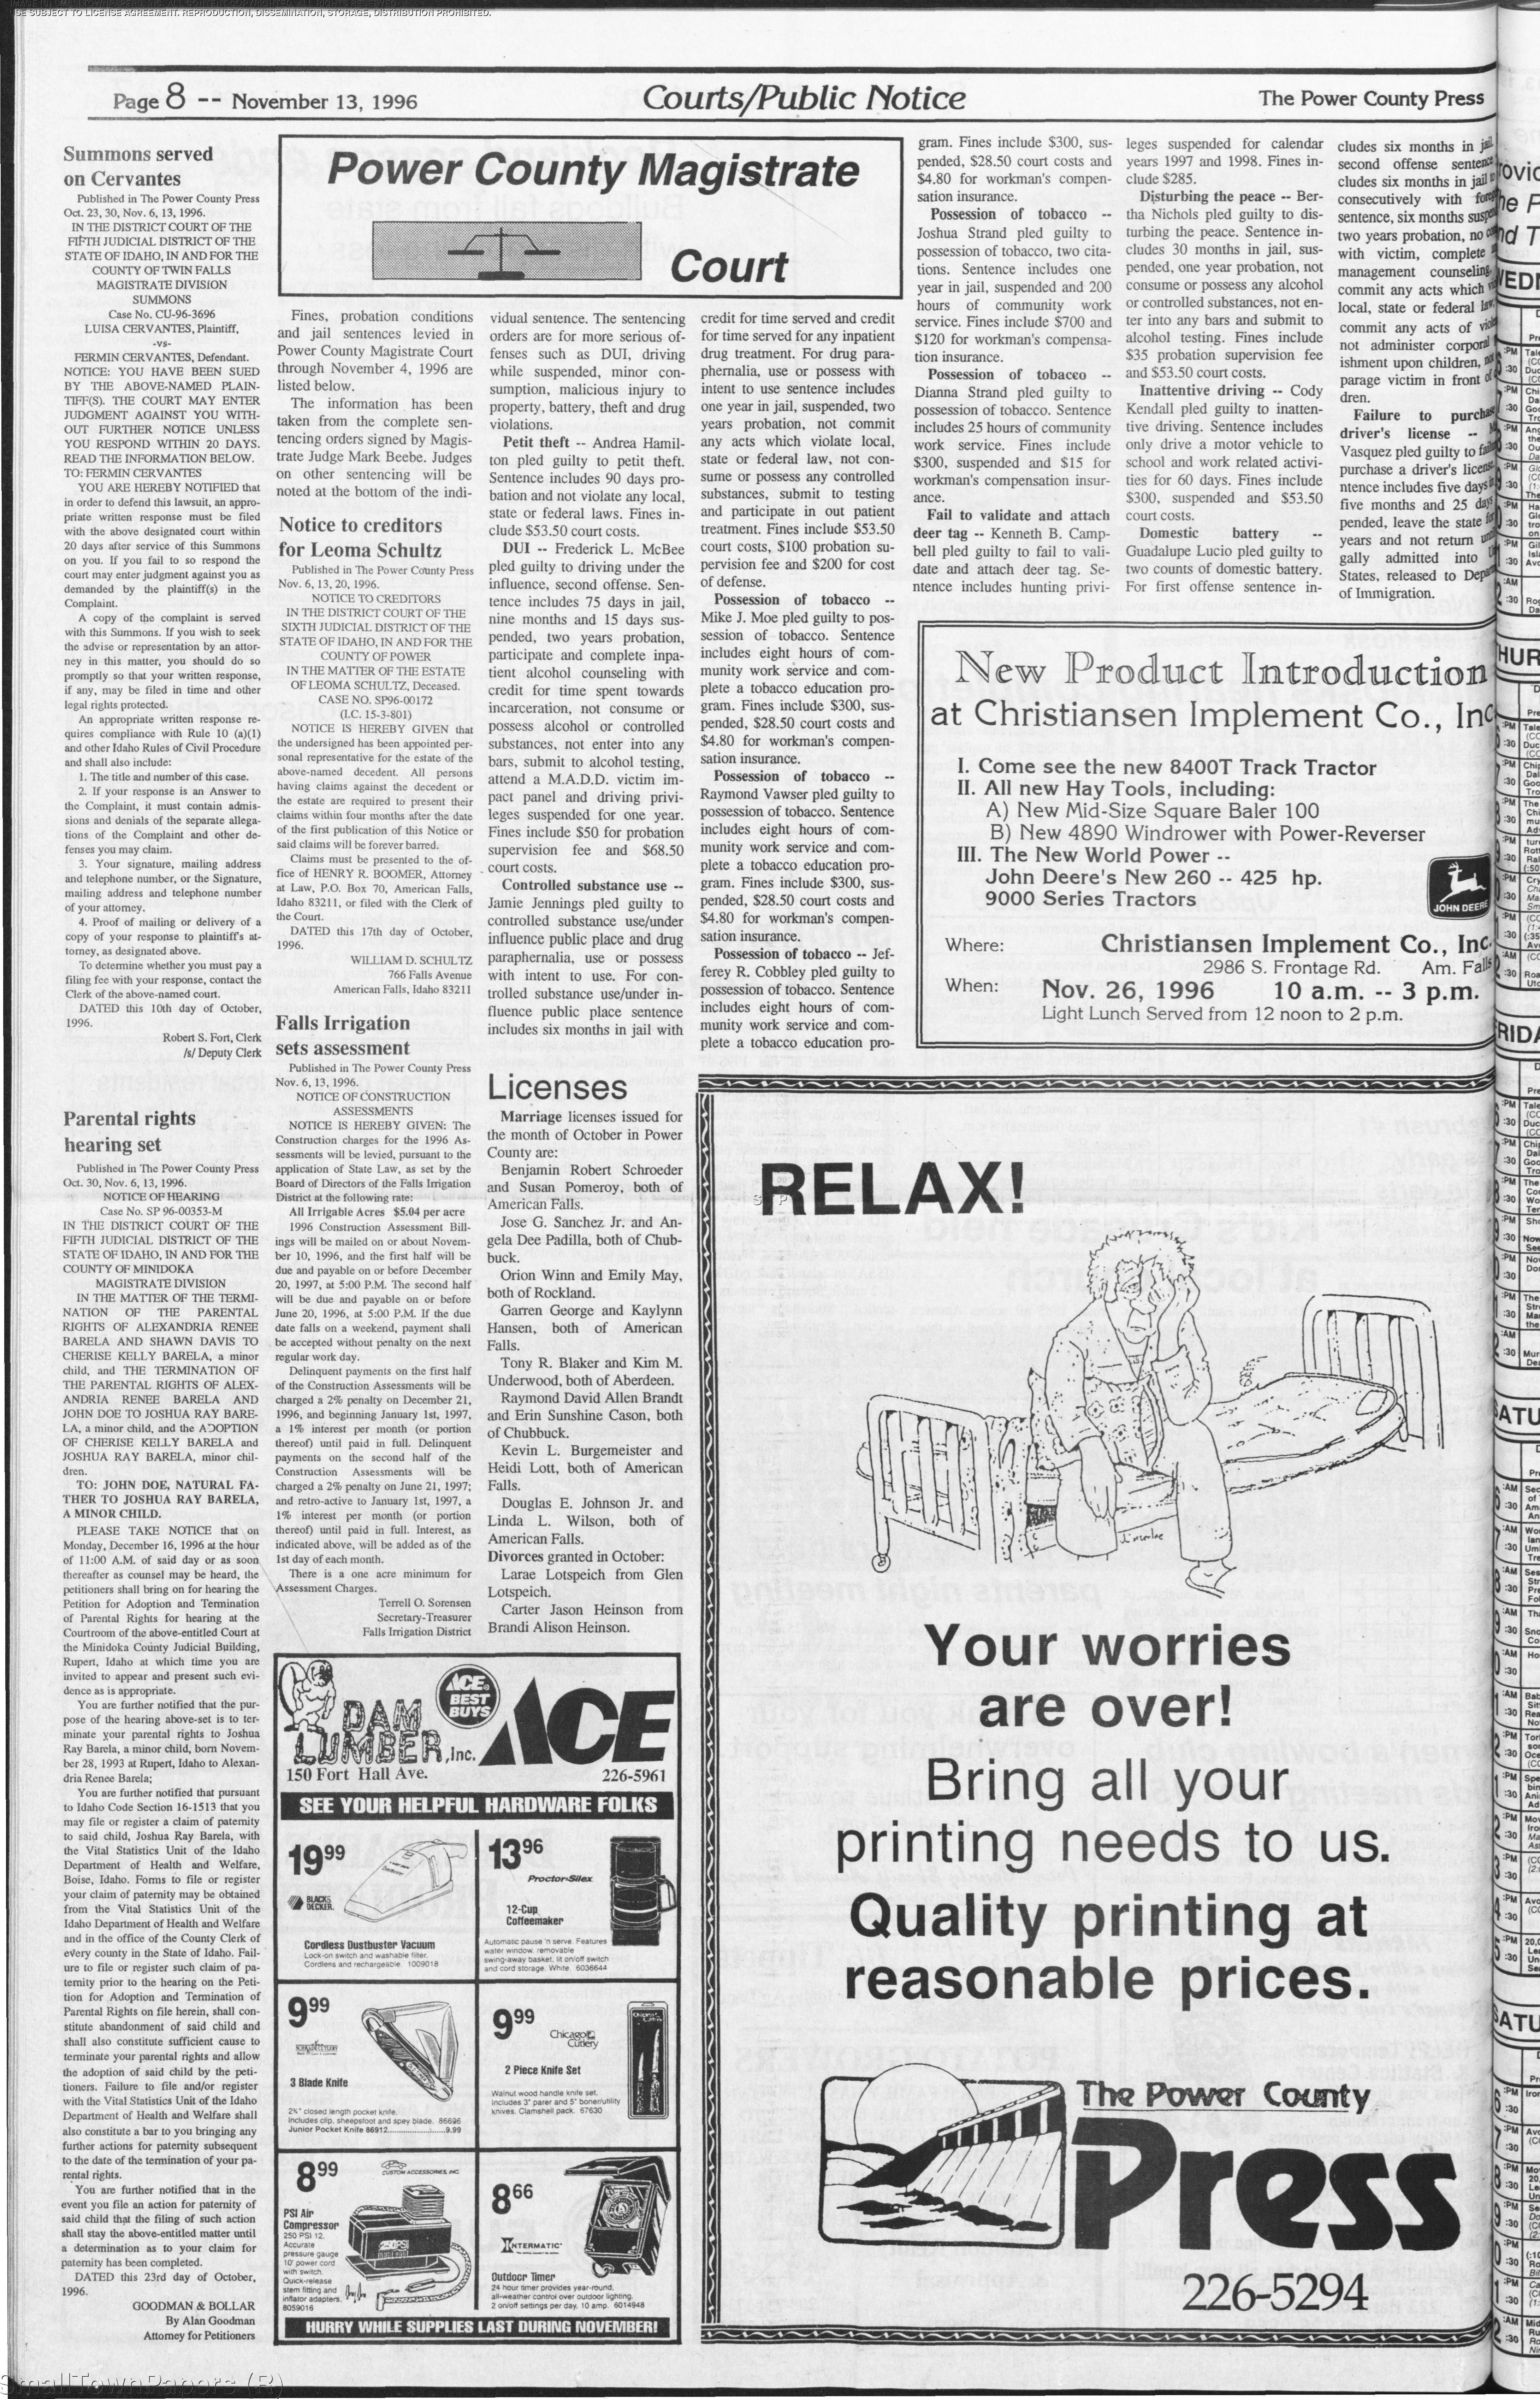 The Power County Press November 13 1996 Page 8